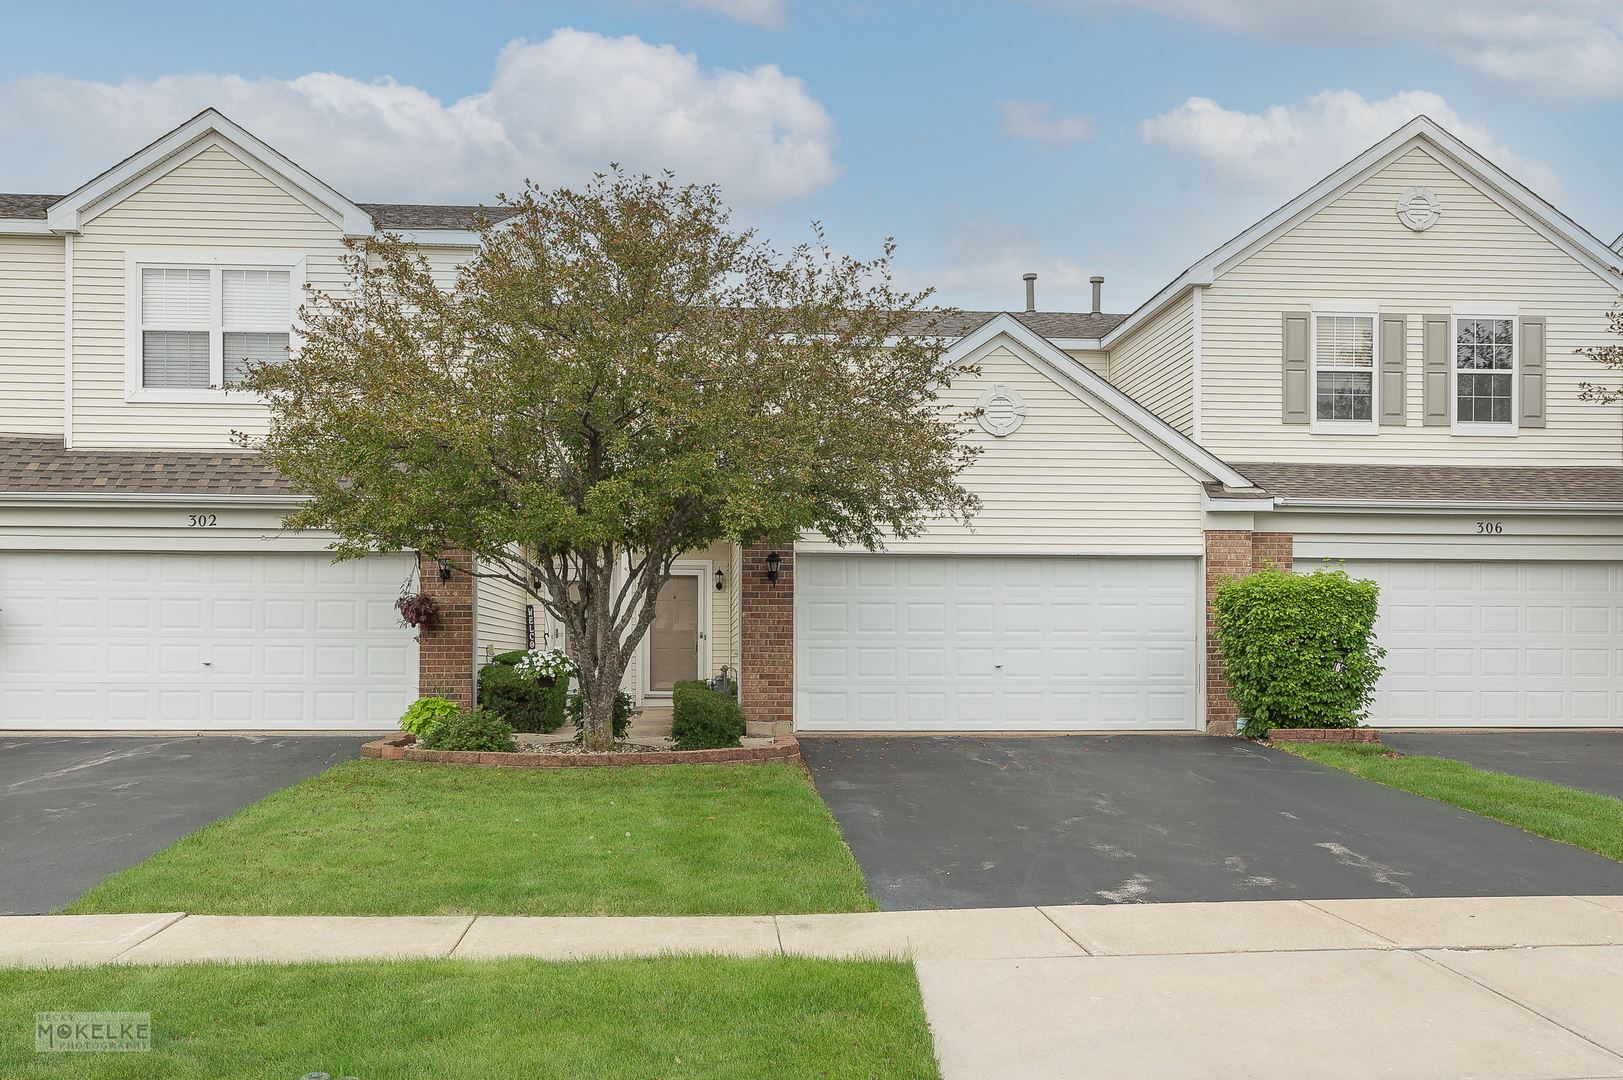 Photo of 304 Parkside Drive, Shorewood, IL 60404 (MLS # 11159738)